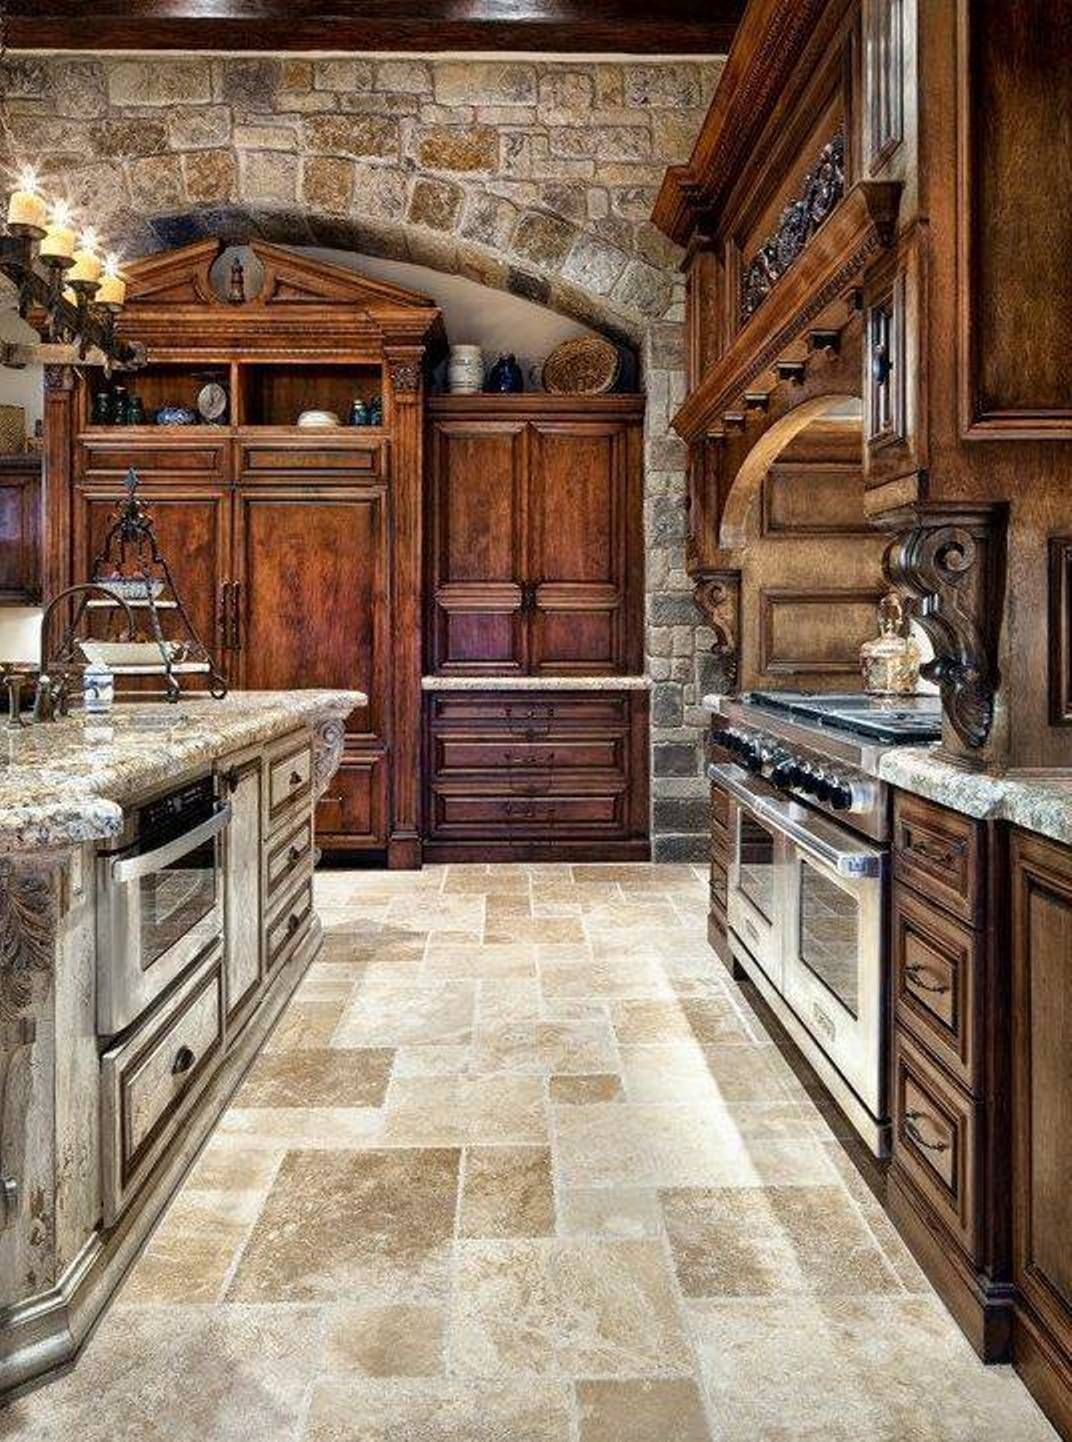 Tuscan Kitchen Design Photos Modern Light Fixtures Old World Themed Style With Arched Brick